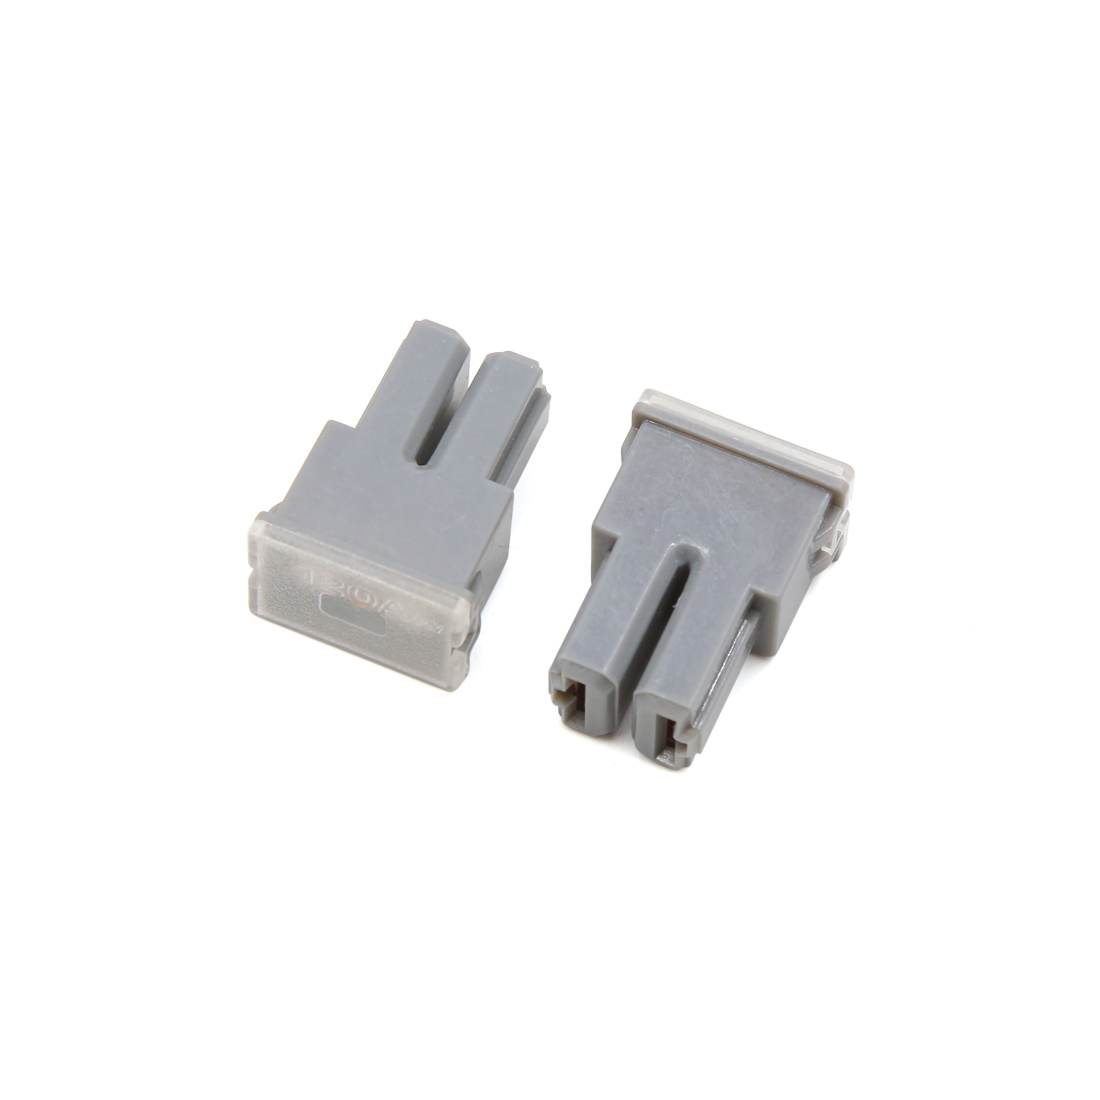 medium resolution of 2pcs 32v 120a gray mini vehicle car female pal cartridge circuit breaker fuse